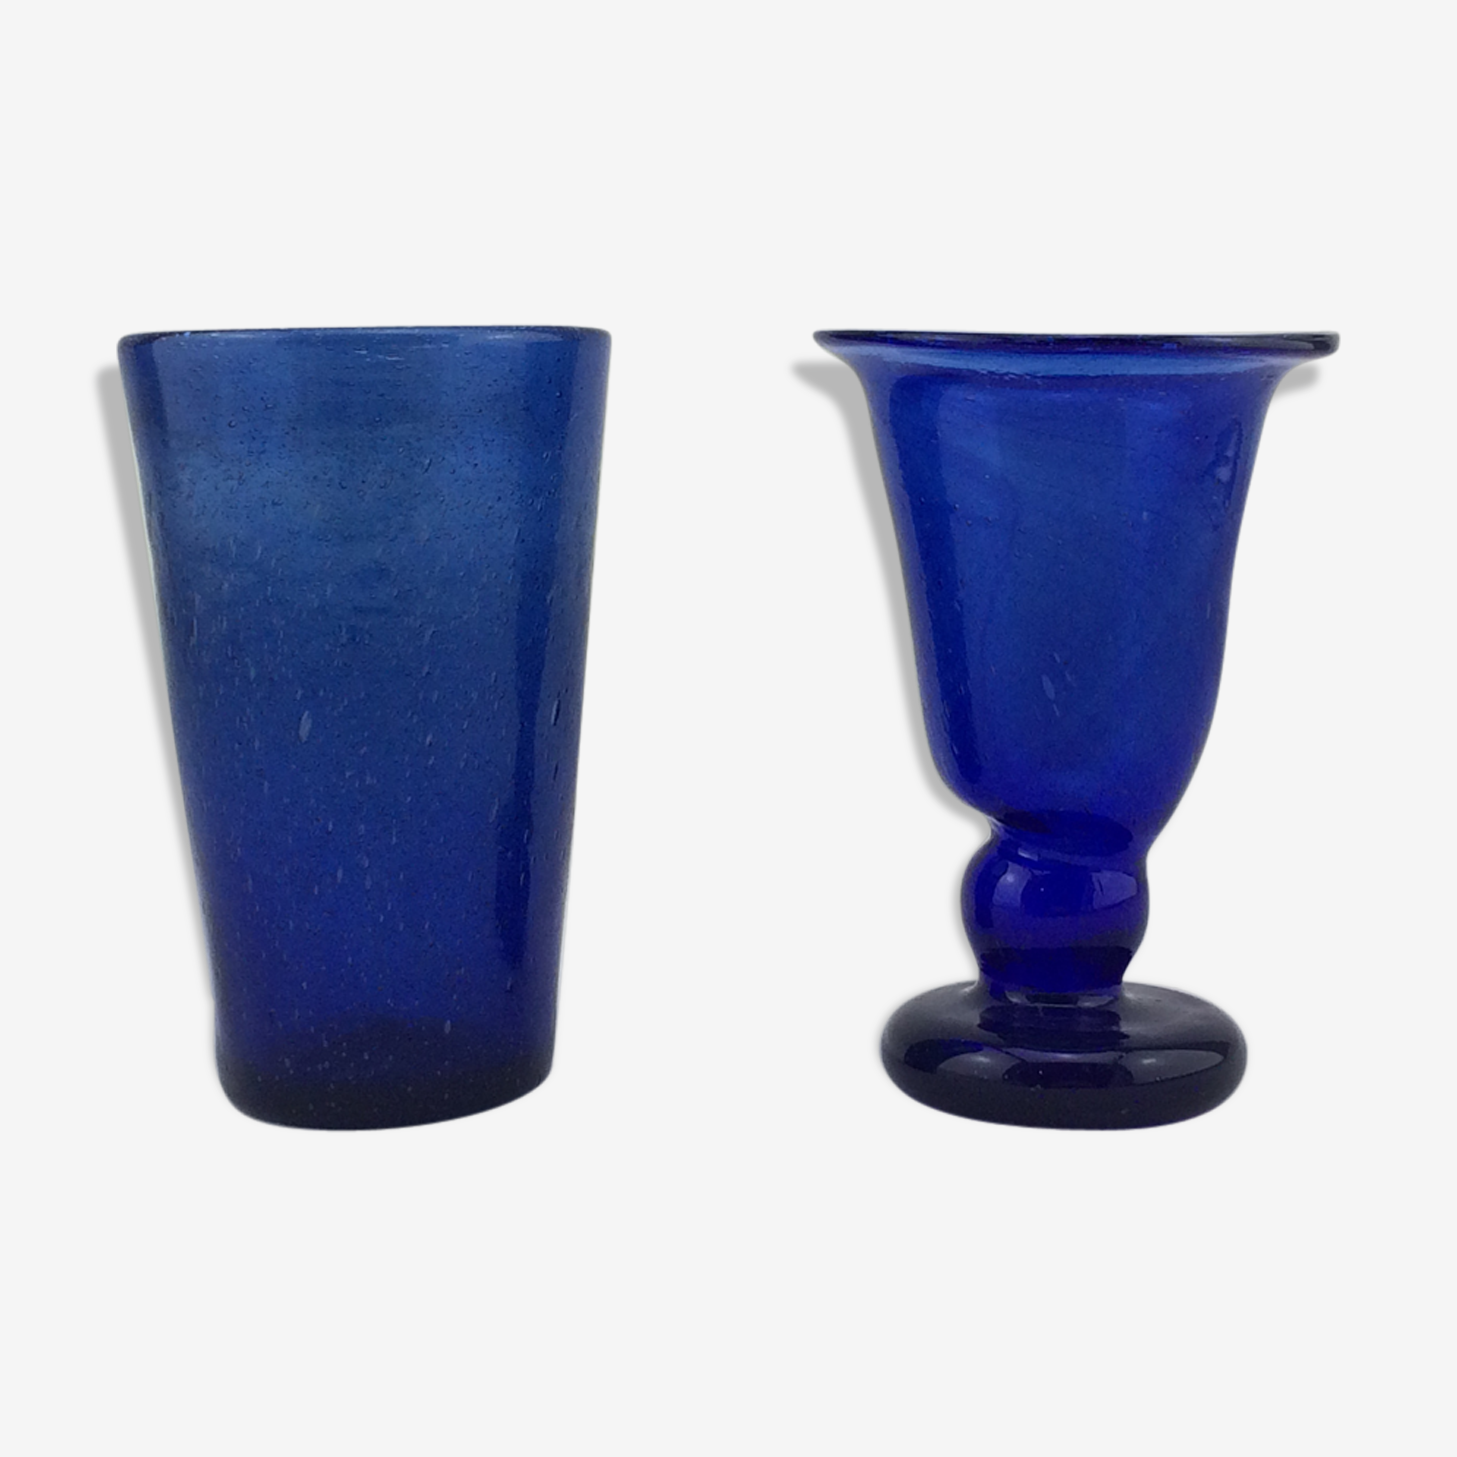 Batch glass bubble of biot blue foot and cup